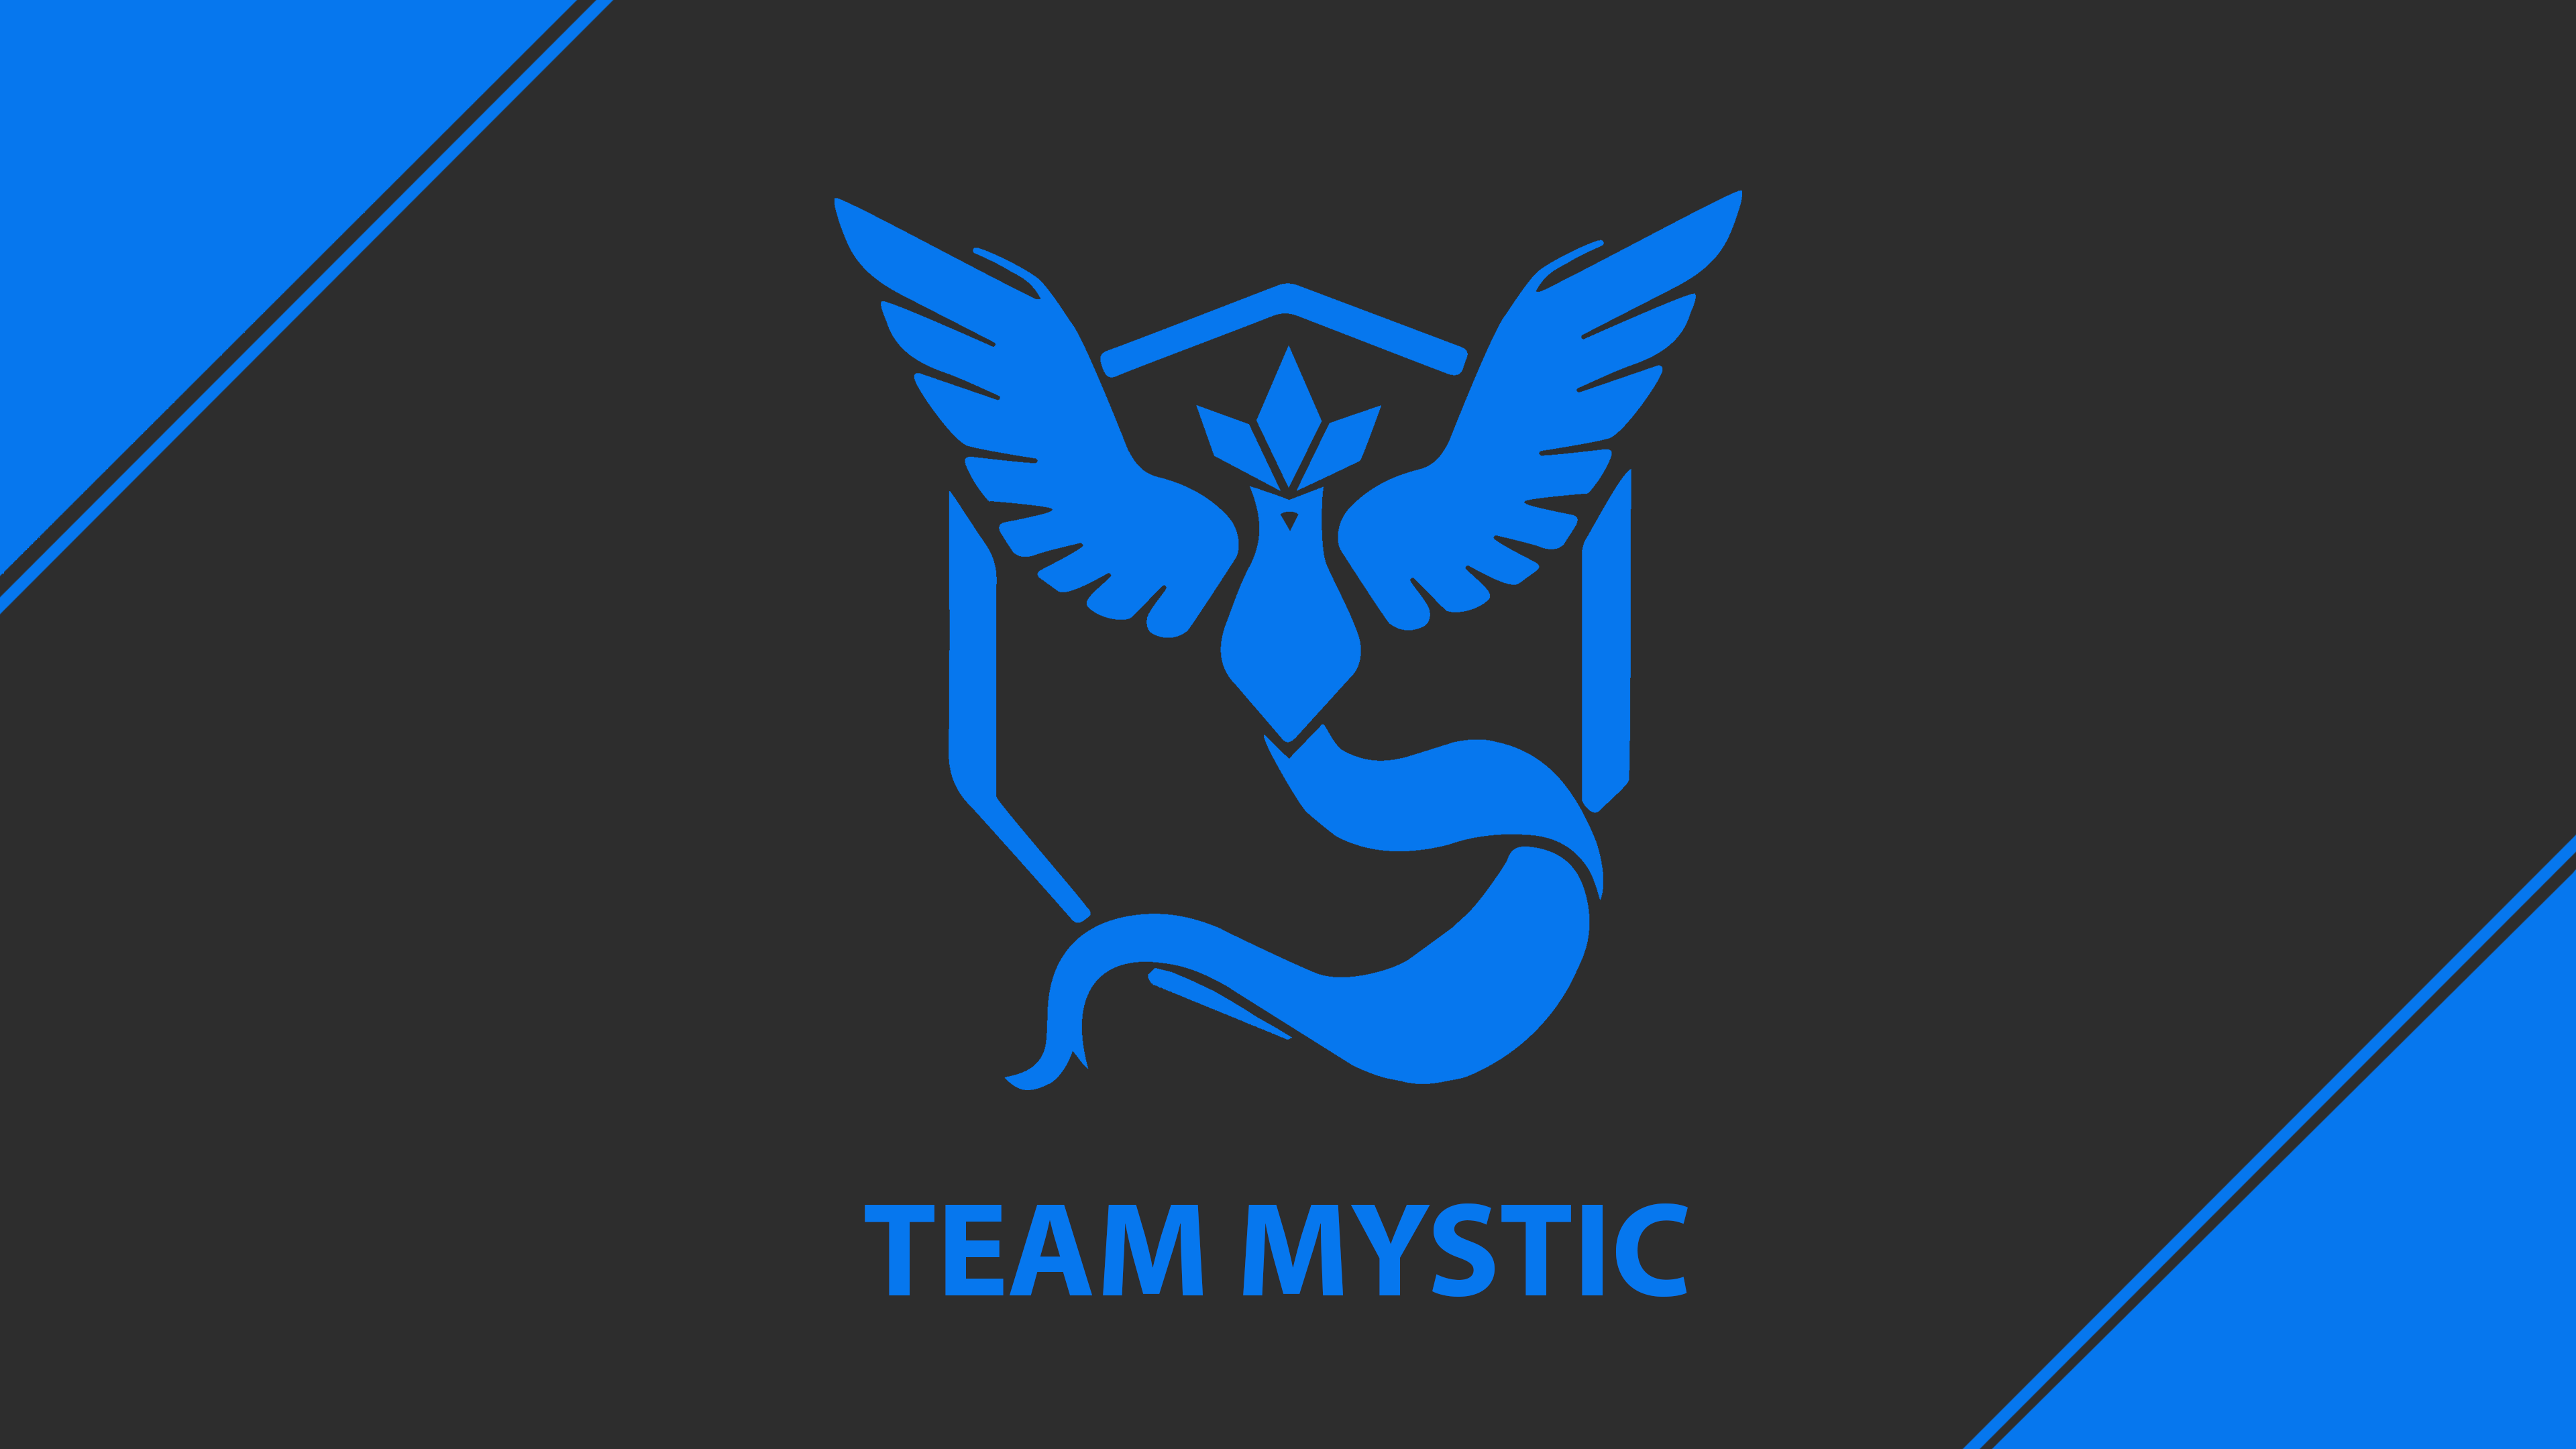 24 Team Mystic Hd Wallpapers Backgrounds Wallpaper Abyss